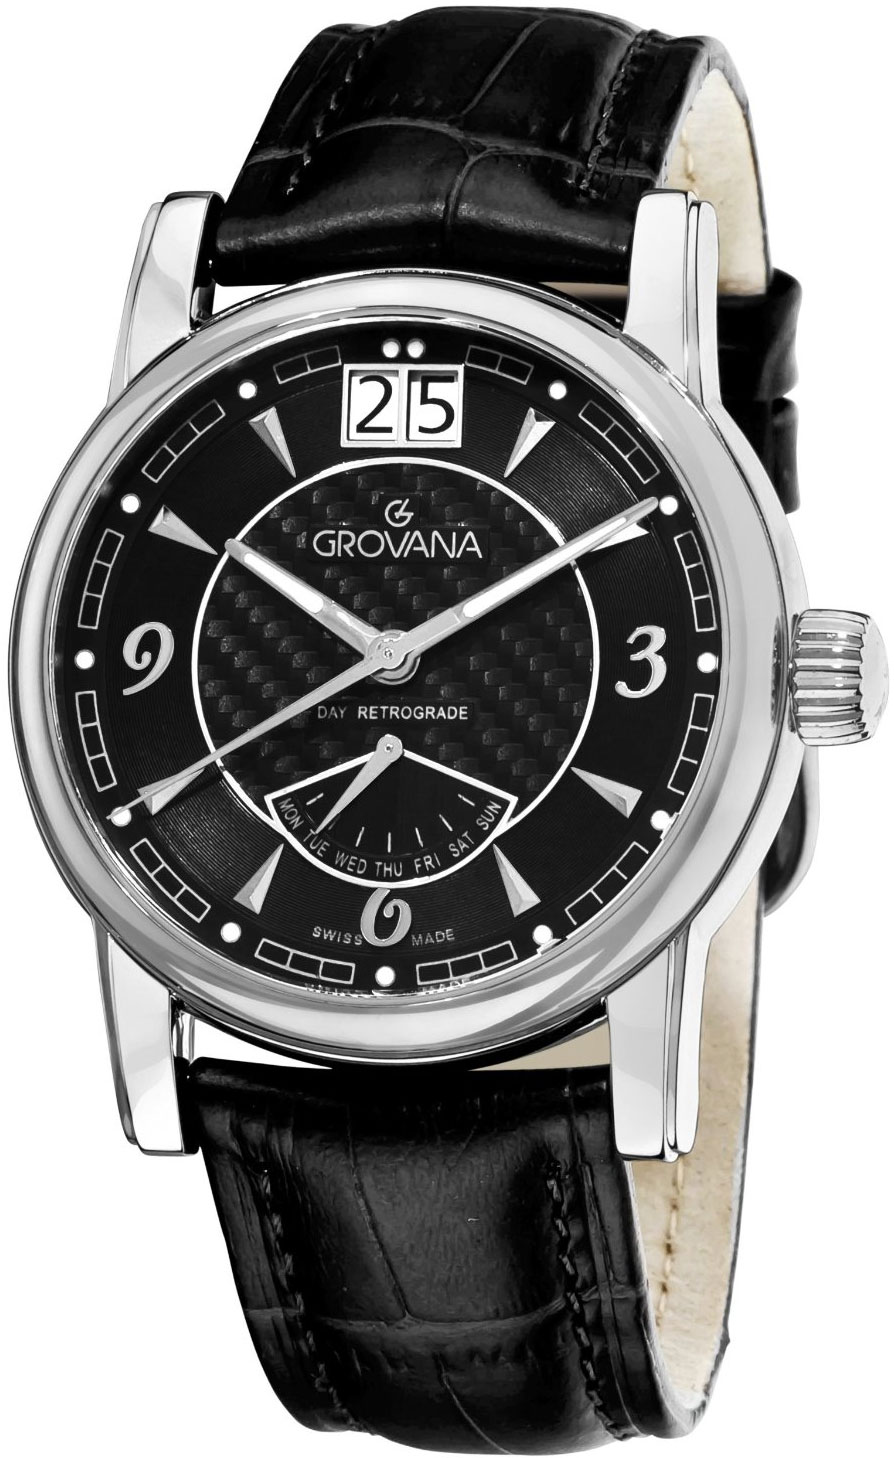 Image of Grovana Day Retrograde Mens Watch Model 1721.1537